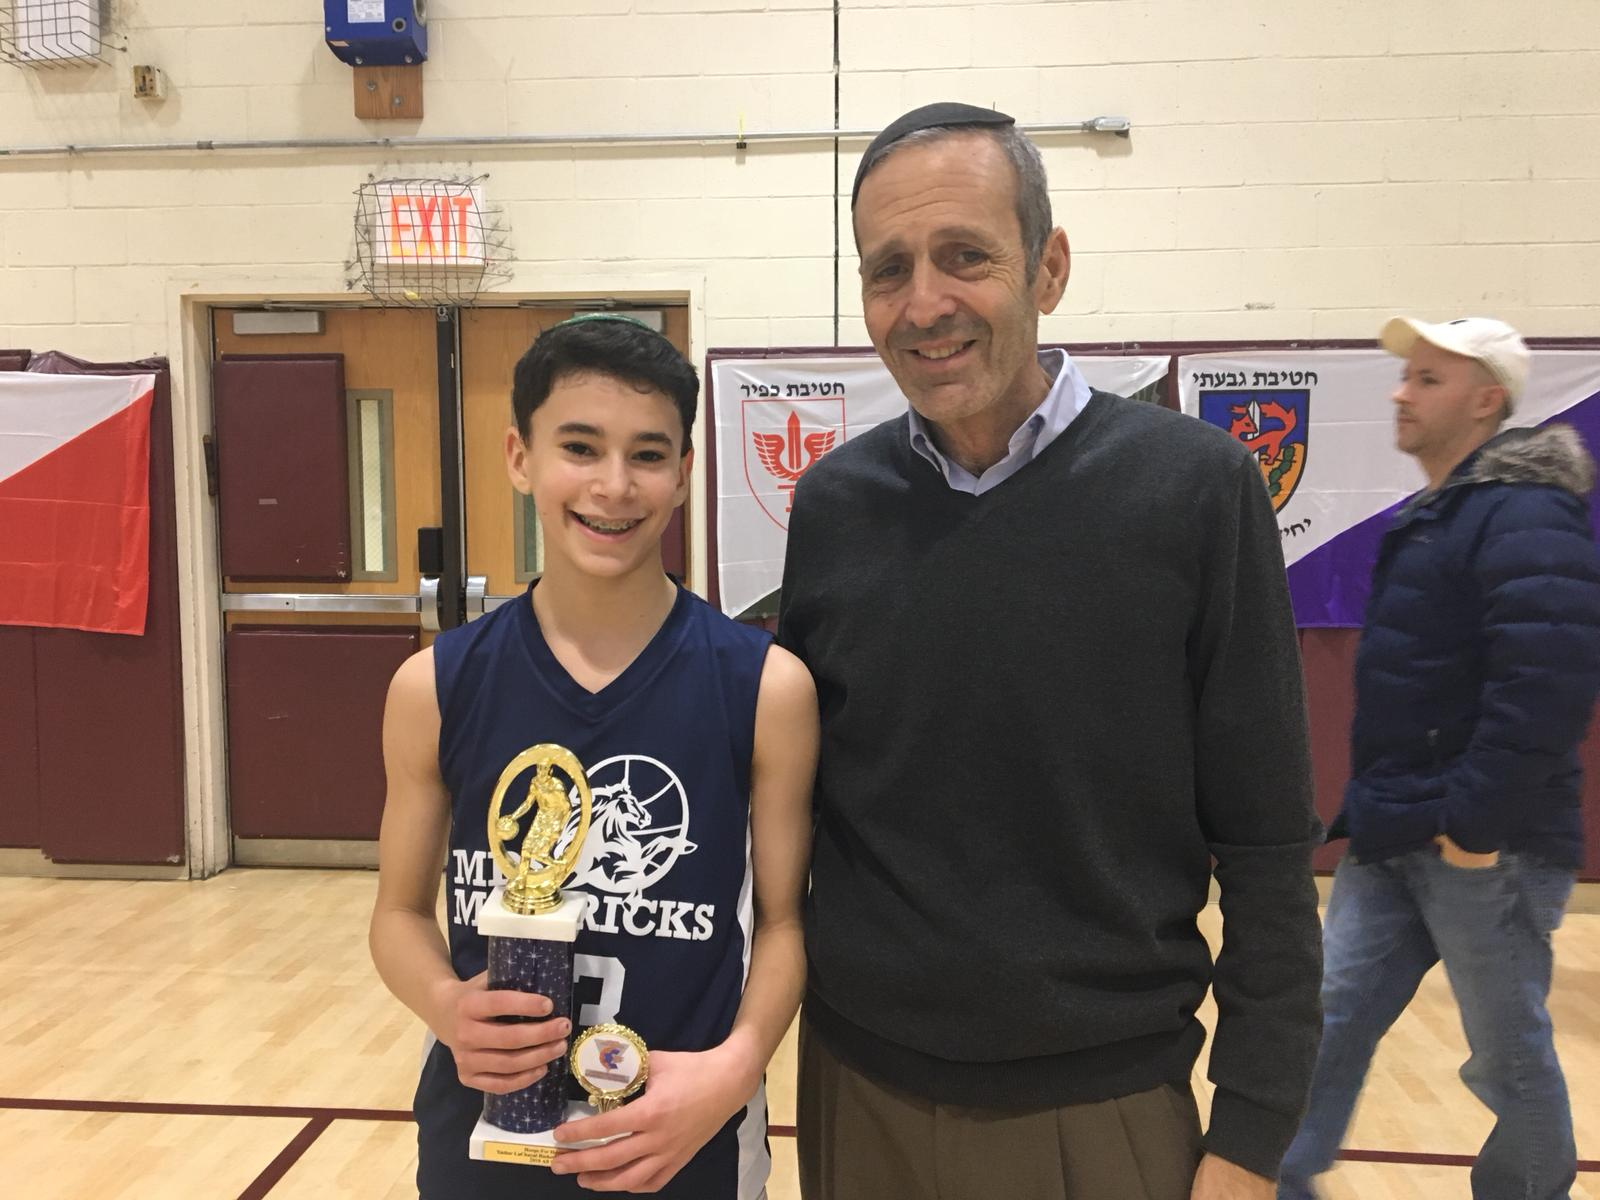 Judah Rhine with the 2018 Basketball champ from Manhattan Day School